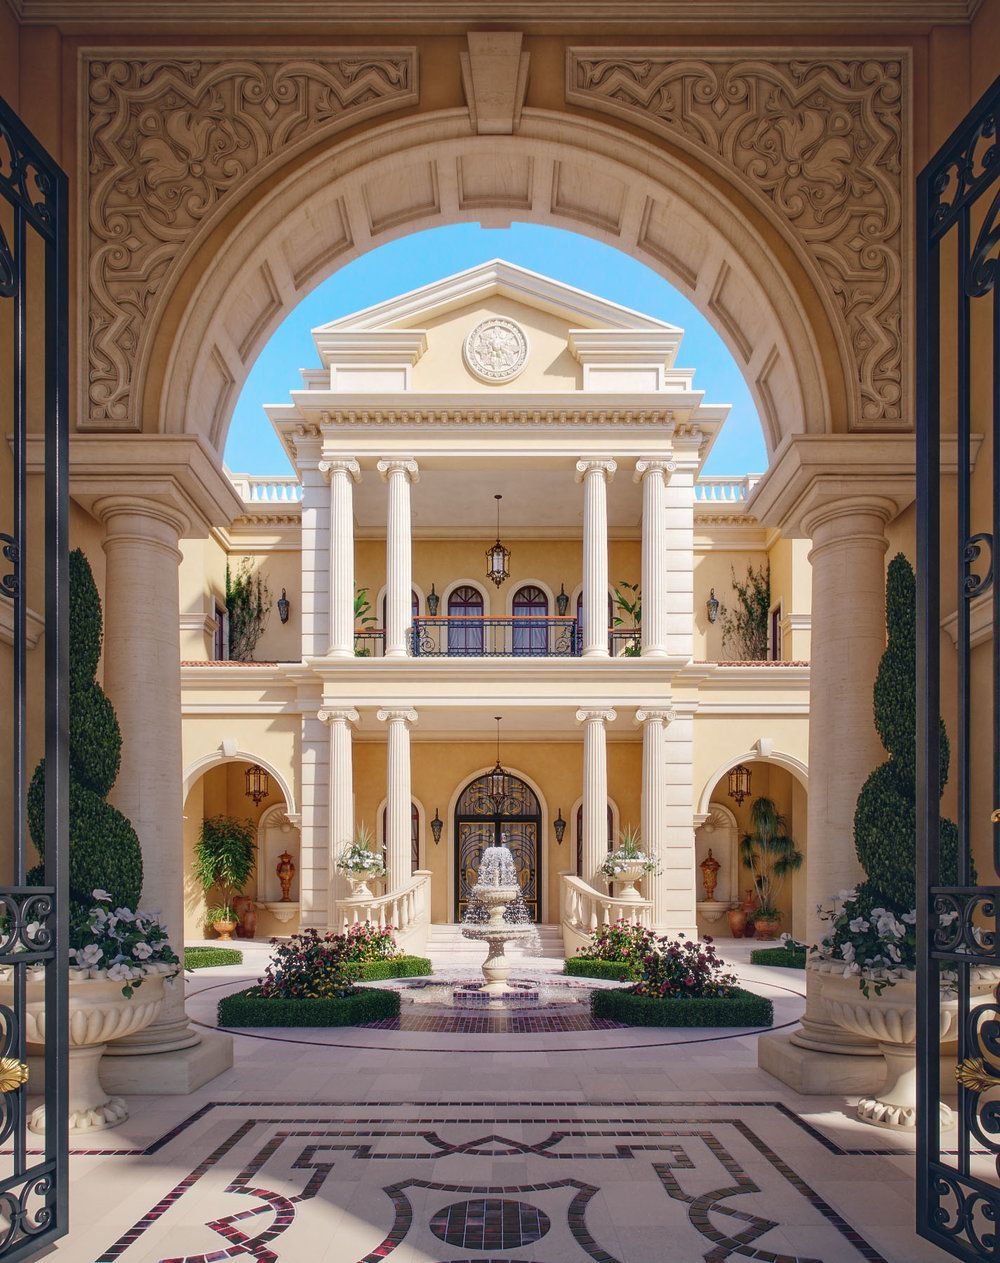 Professional luxury villa exterior designs in qatar - Use Of Natural Materials Can Create A Beautifully Interior And Exterior Contact Us We Can Help You To Realize Your Bold Dreams Landscape Lan